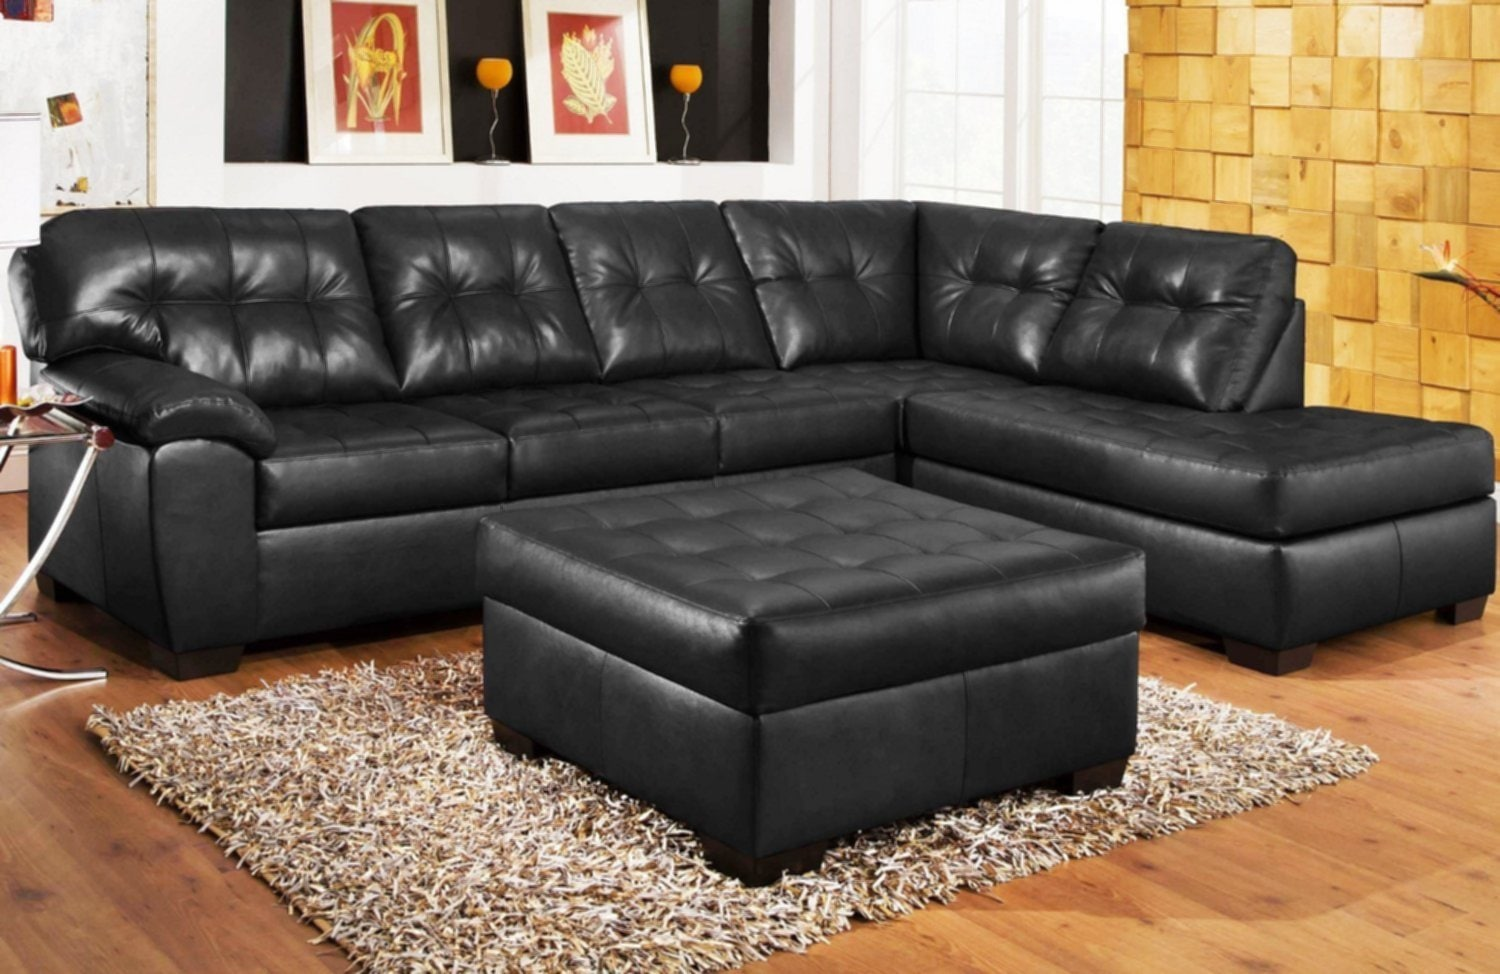 Black Leather Sectional Design